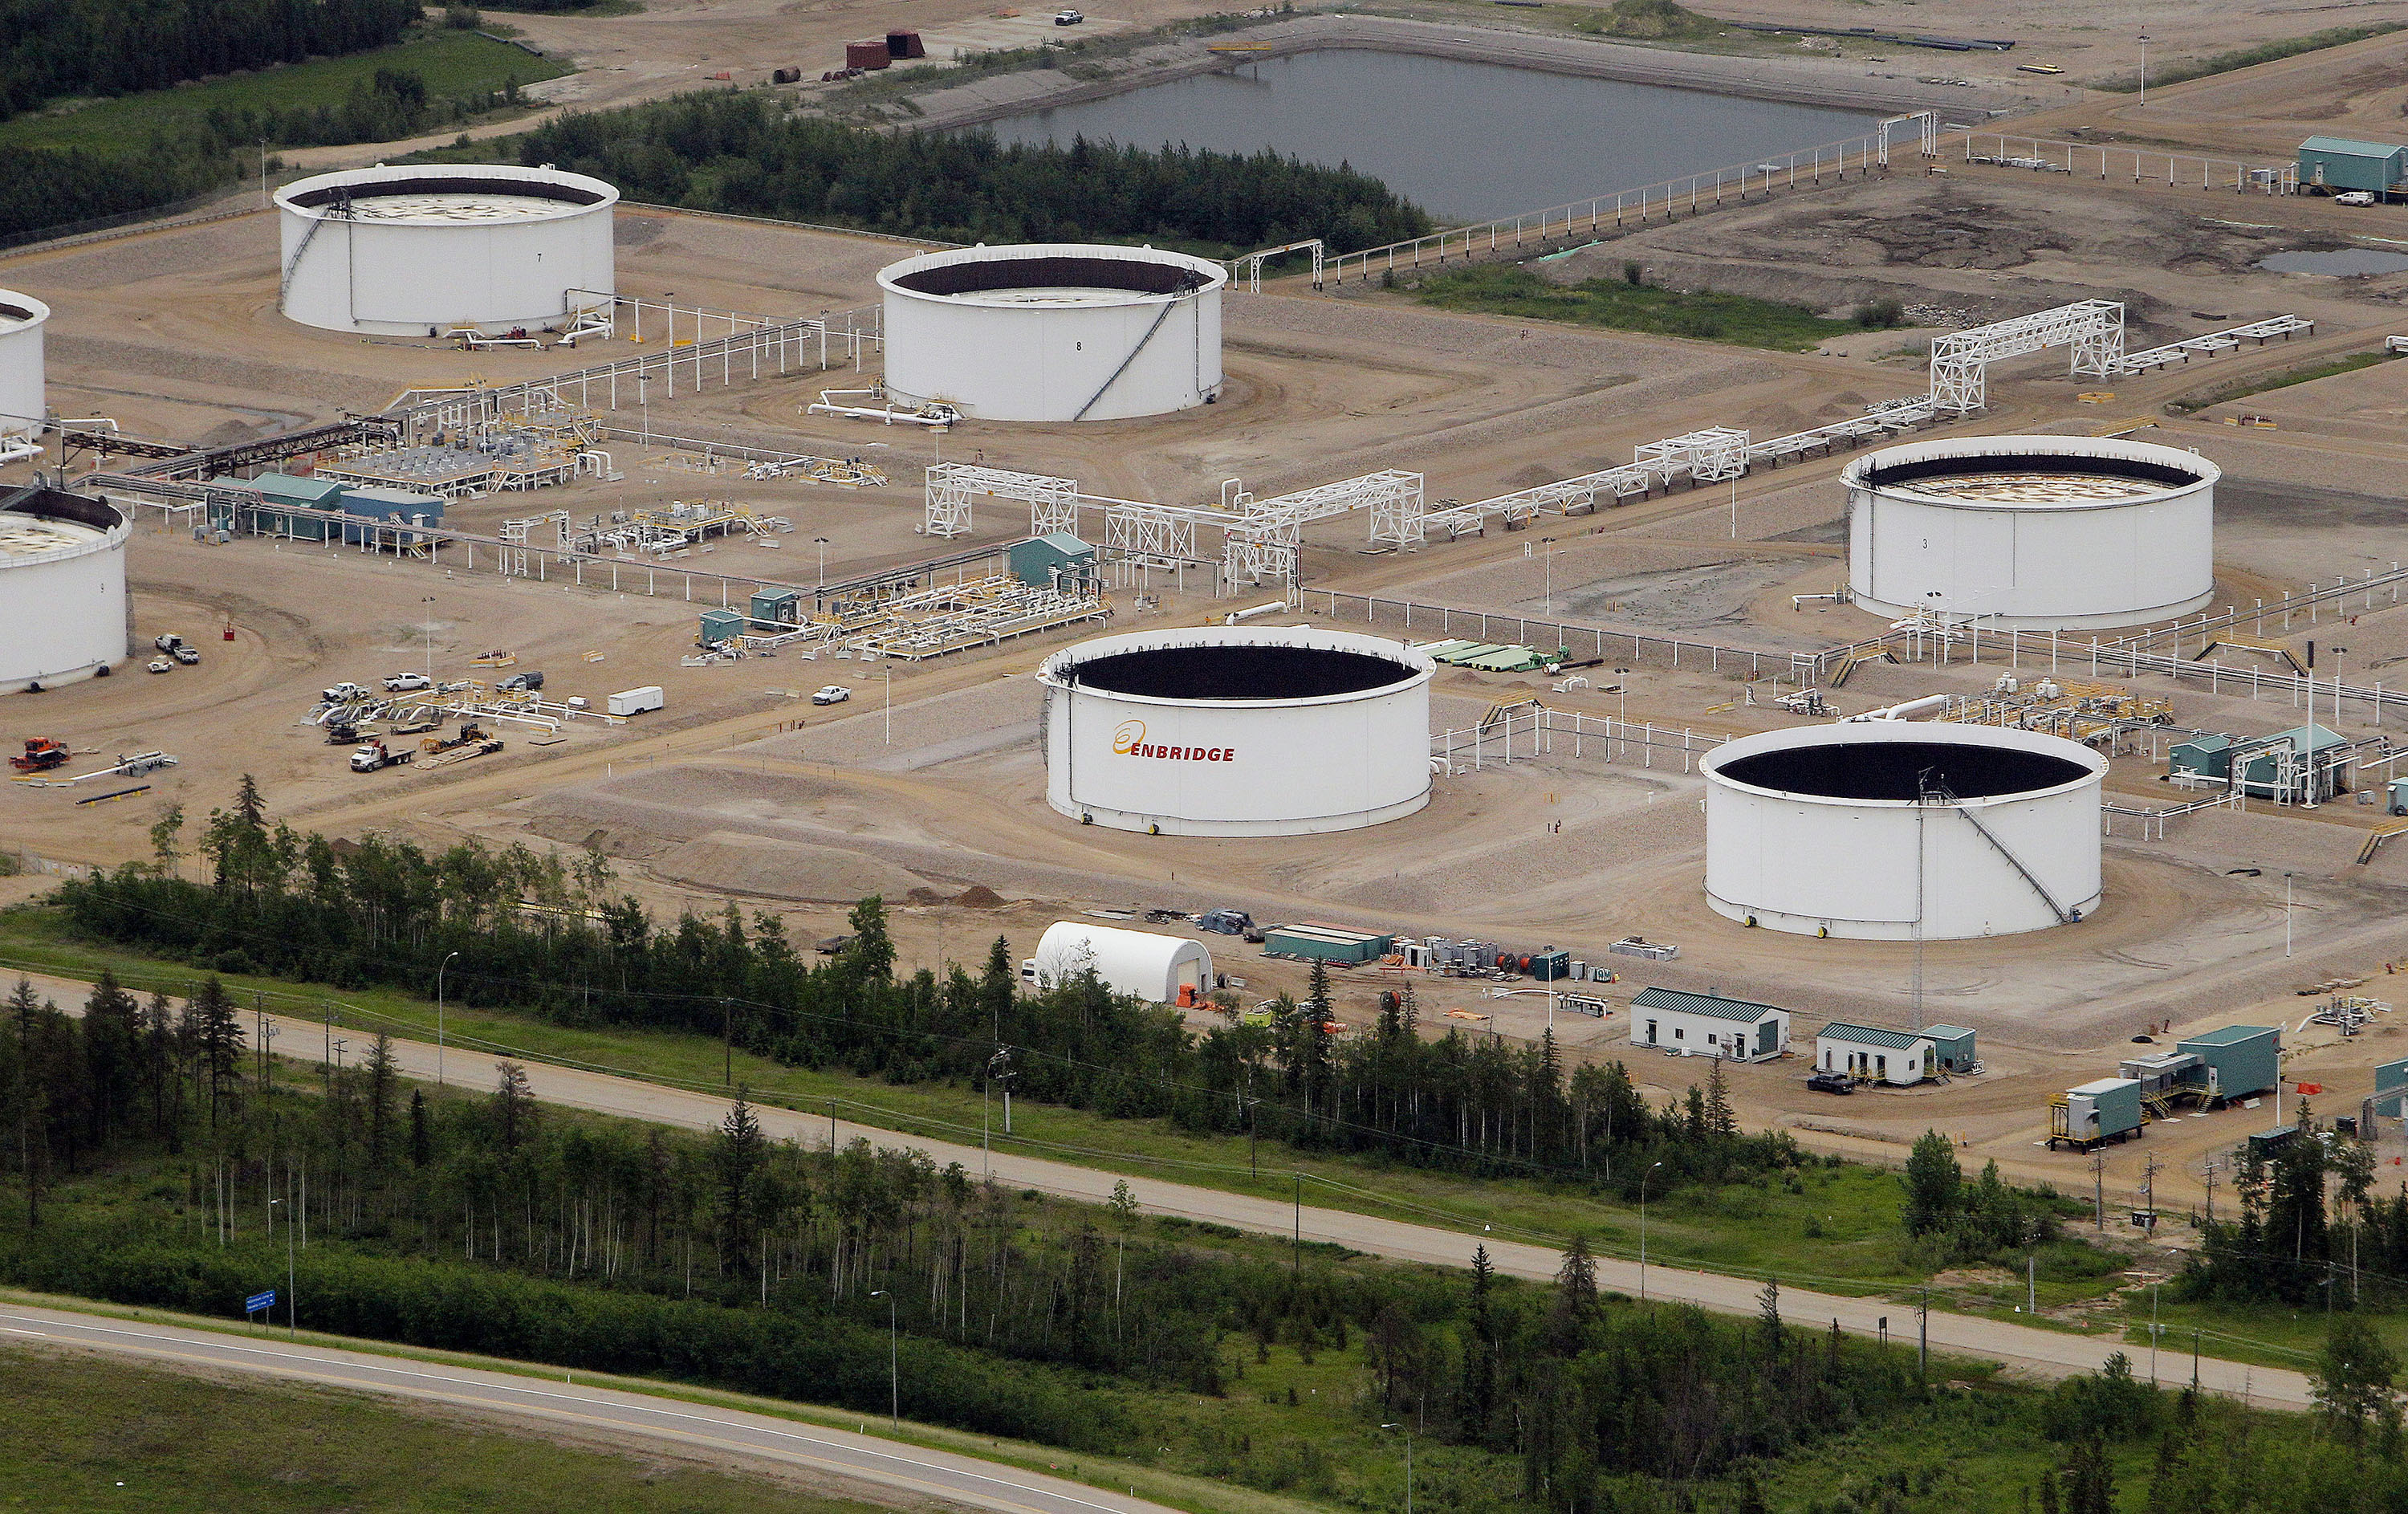 An Enbridge Inc. tank farm stands in this aerial photograph taken above the Athabasca Oil Sands near Fort McMurray, Alberta, Canada, on Wednesday, June 19, 2014. Heavy crude from the oil sands has traded at an average of $18.70 per barrel below the U.S. benchmark over the last five years due to a transportation bottleneck in North America. The discount costs Canadas economy as much as C$50 million per day, according to the Canadian Chamber of Commerce. Photographer: Ben Nelms/Bloomberg via Getty Images